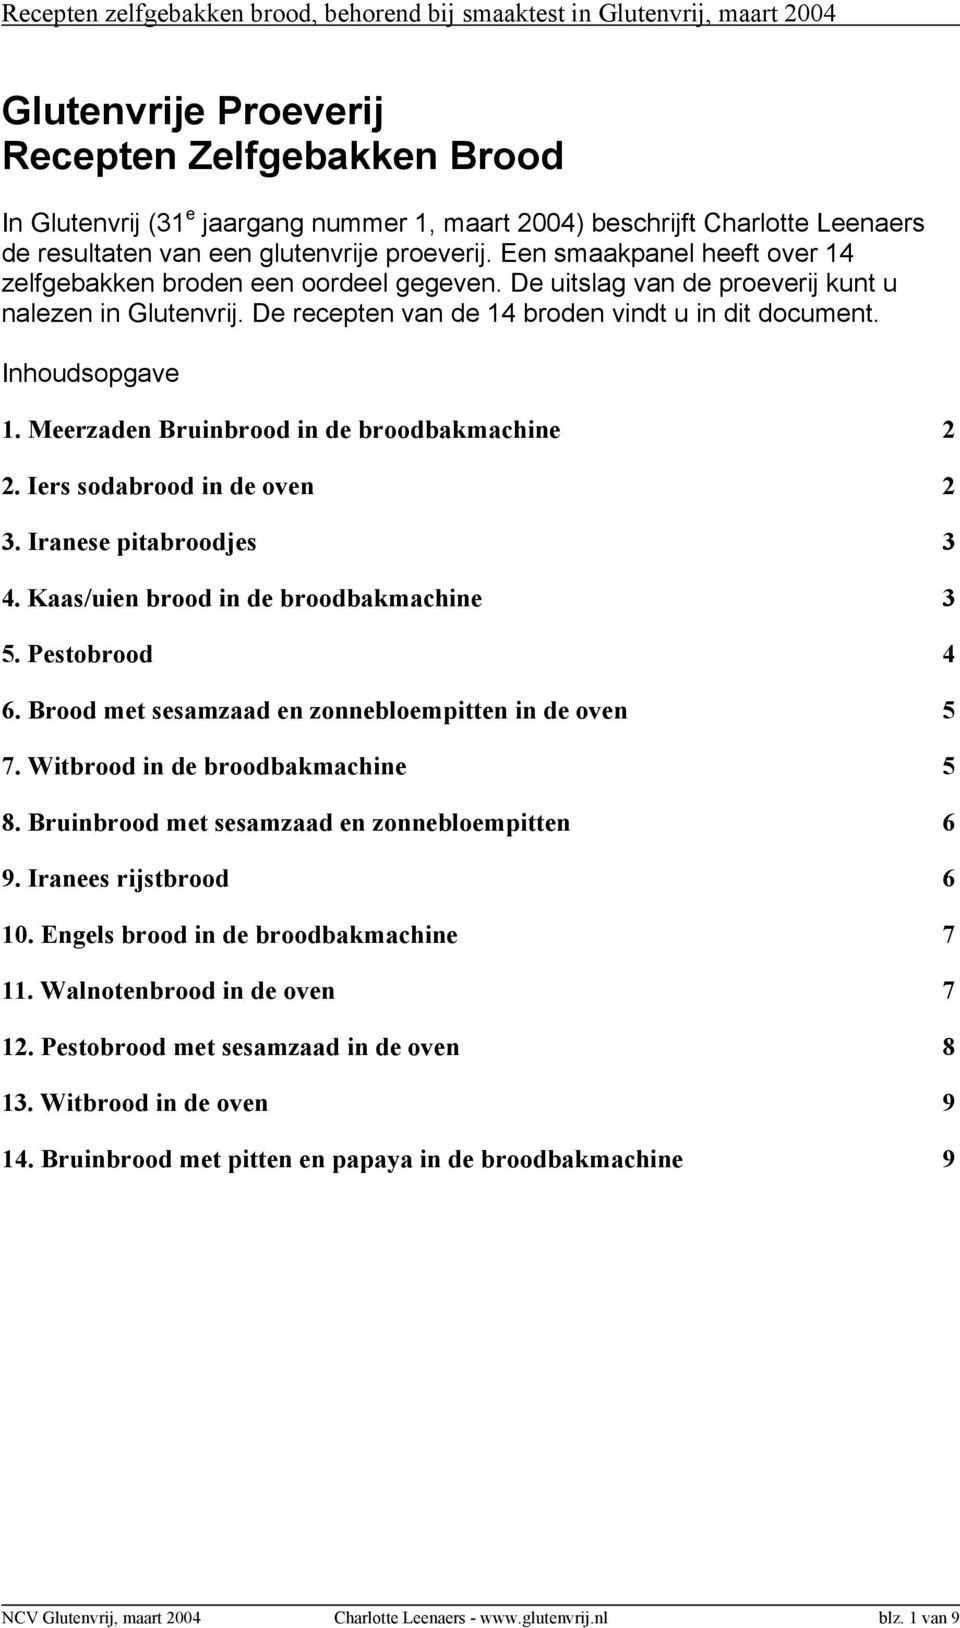 Meerzaden Bruinbrood in de broodbakmachine 2 2. Iers sodabrood in de oven 2 3. Iranese pitabroodjes 3 4. Kaas/uien brood in de broodbakmachine 3 5. Pestobrood 4 6.